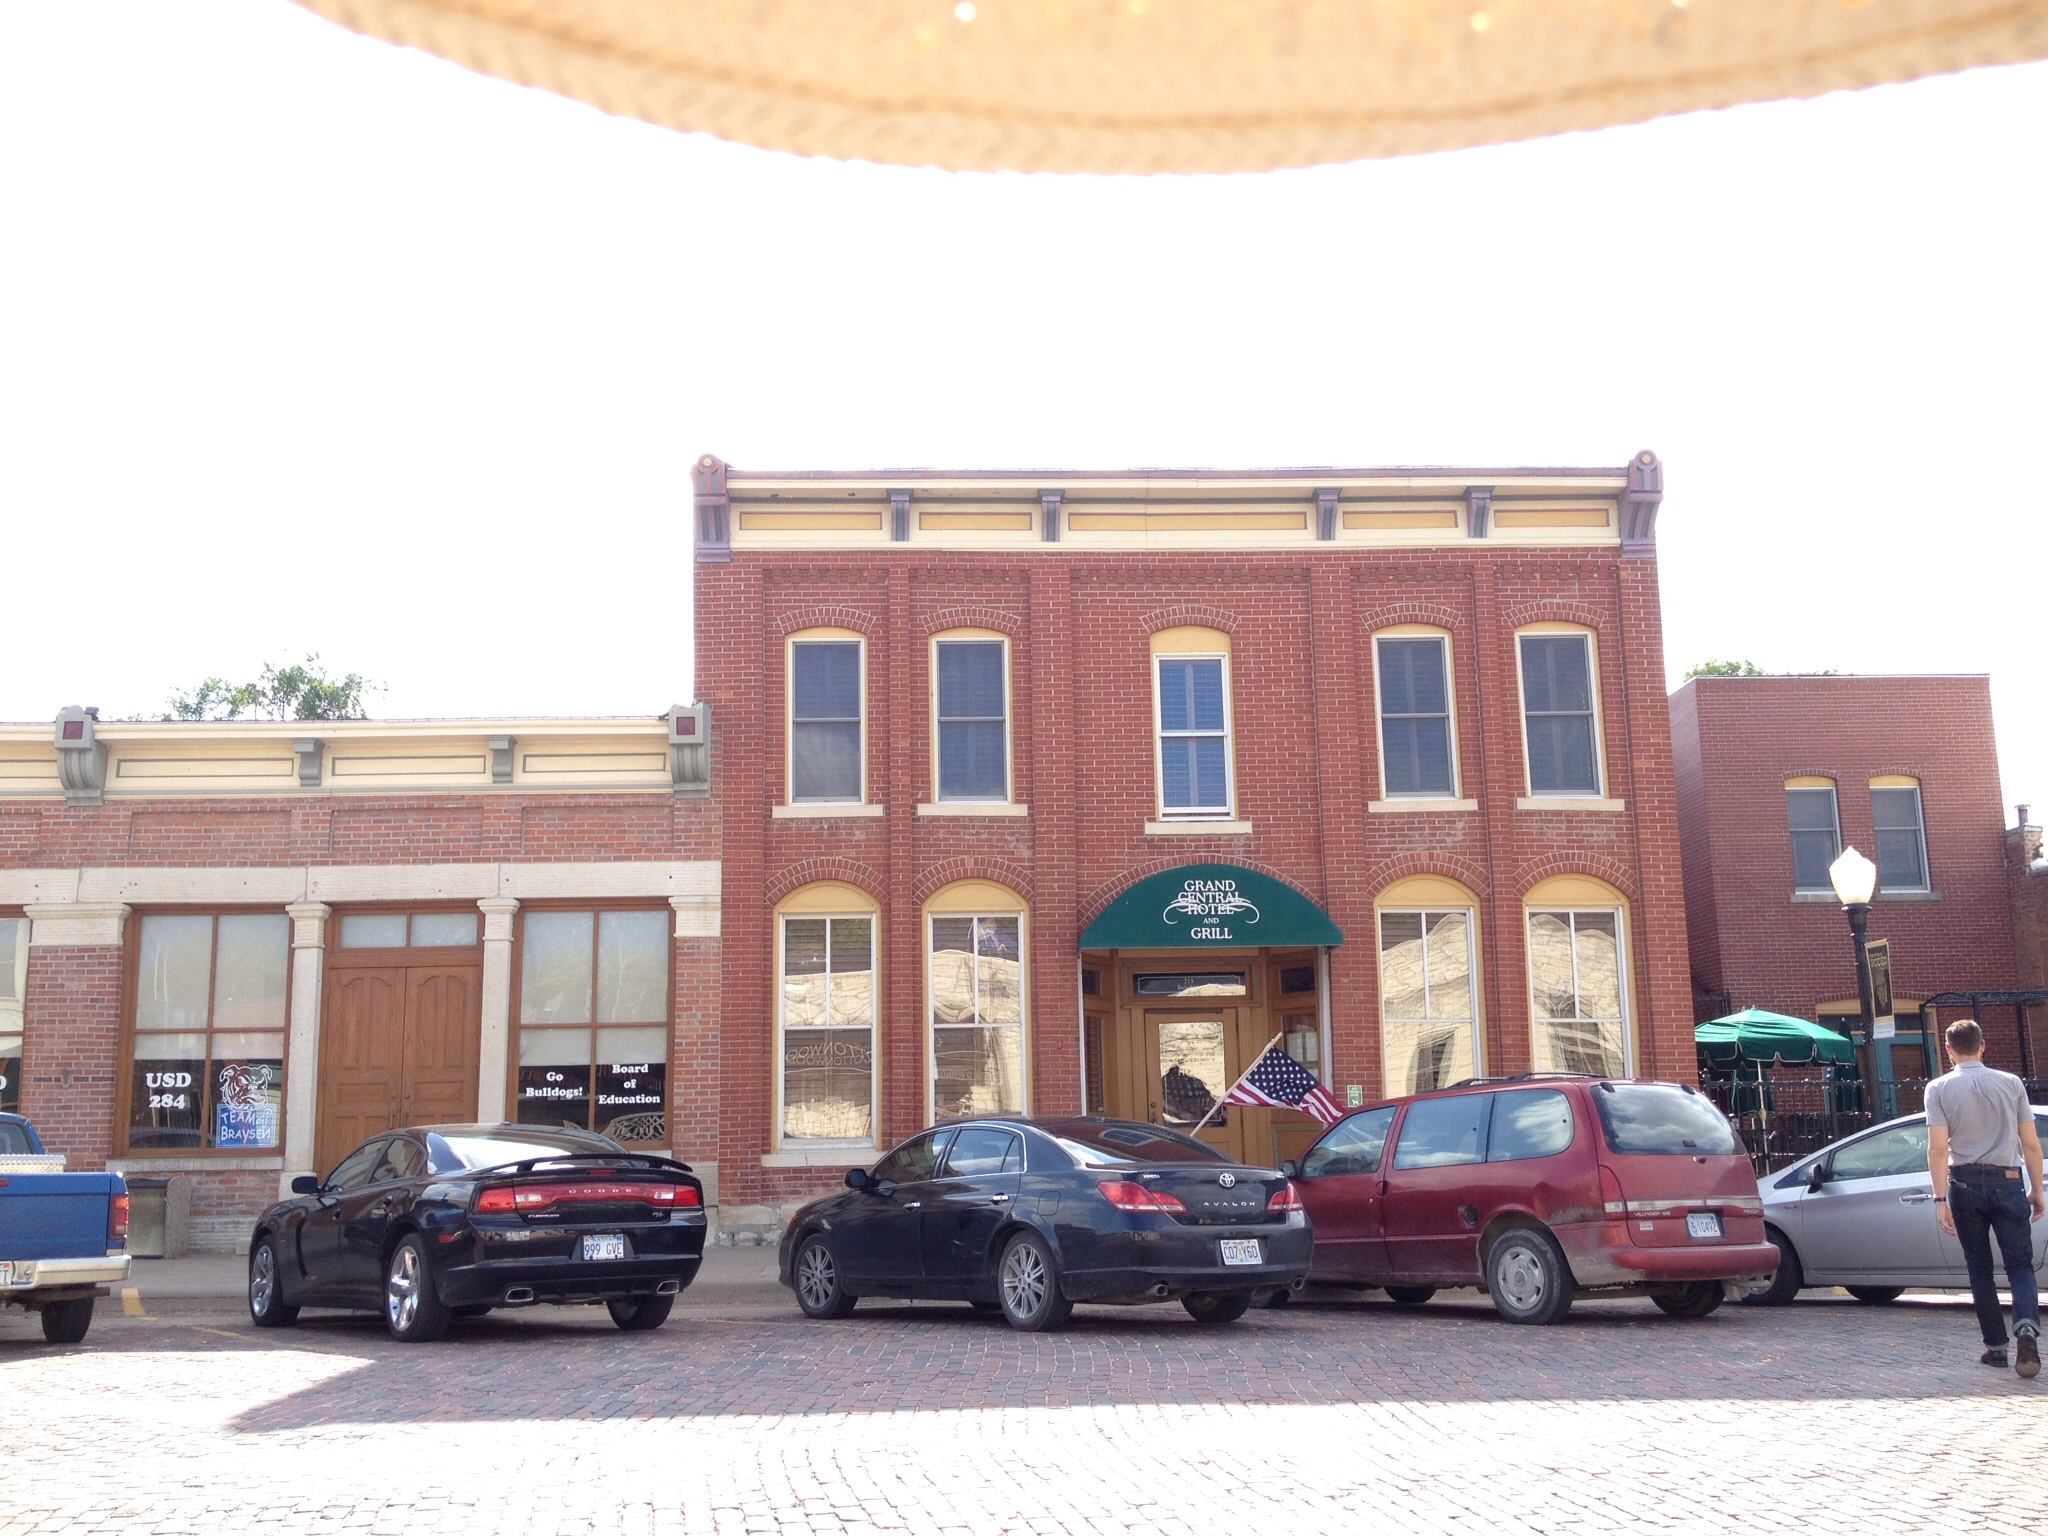 We stayed at the lovely and historic Grand Central Hotel in Cottonwood Falls.